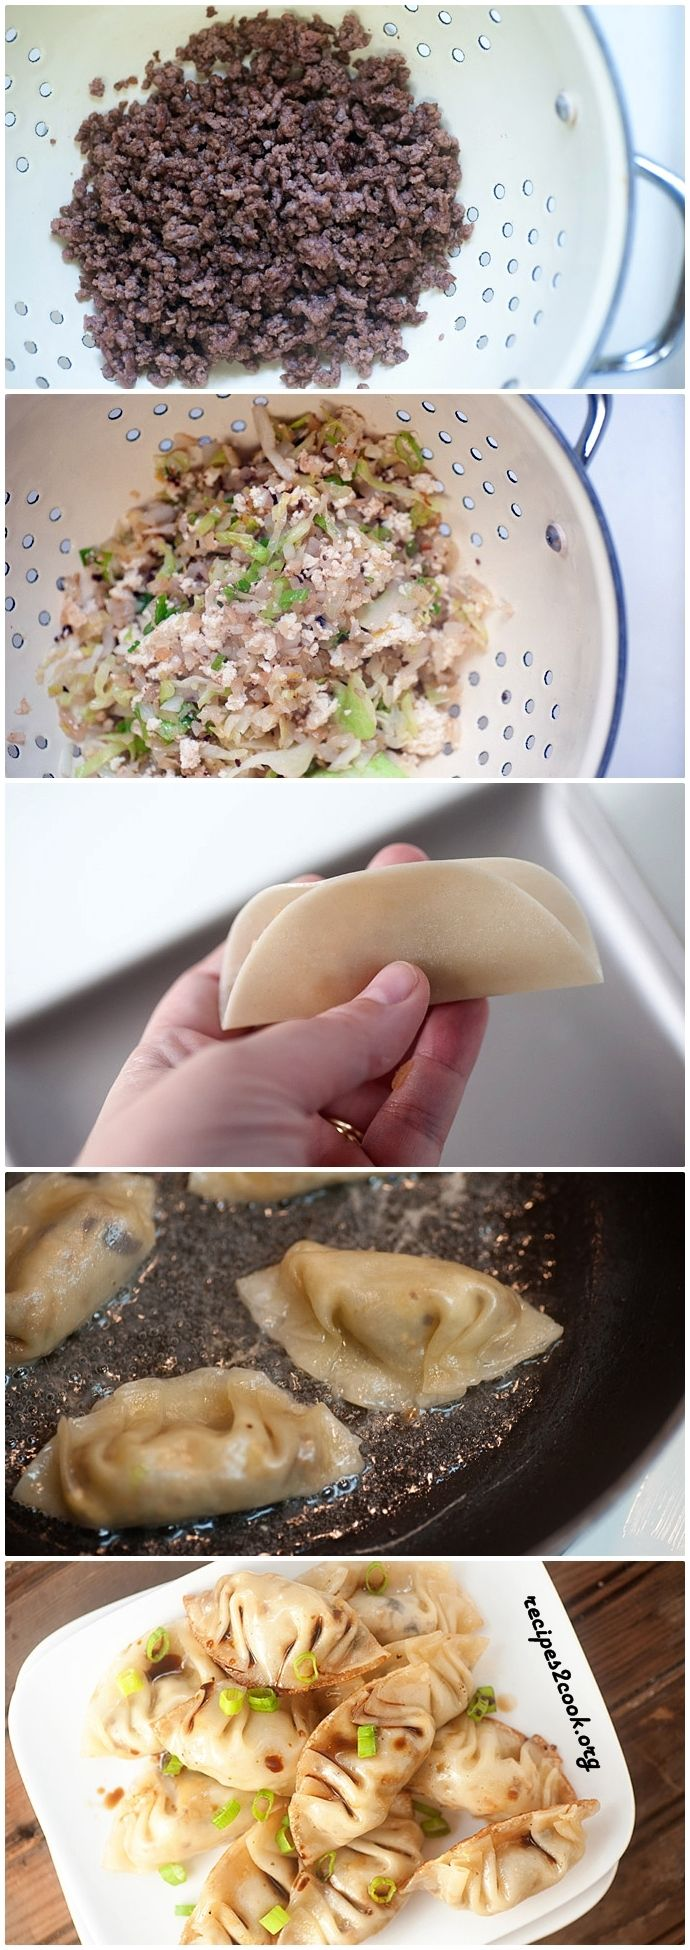 MANDU KOREAN DUMPLINGS | yummy | Pinterest